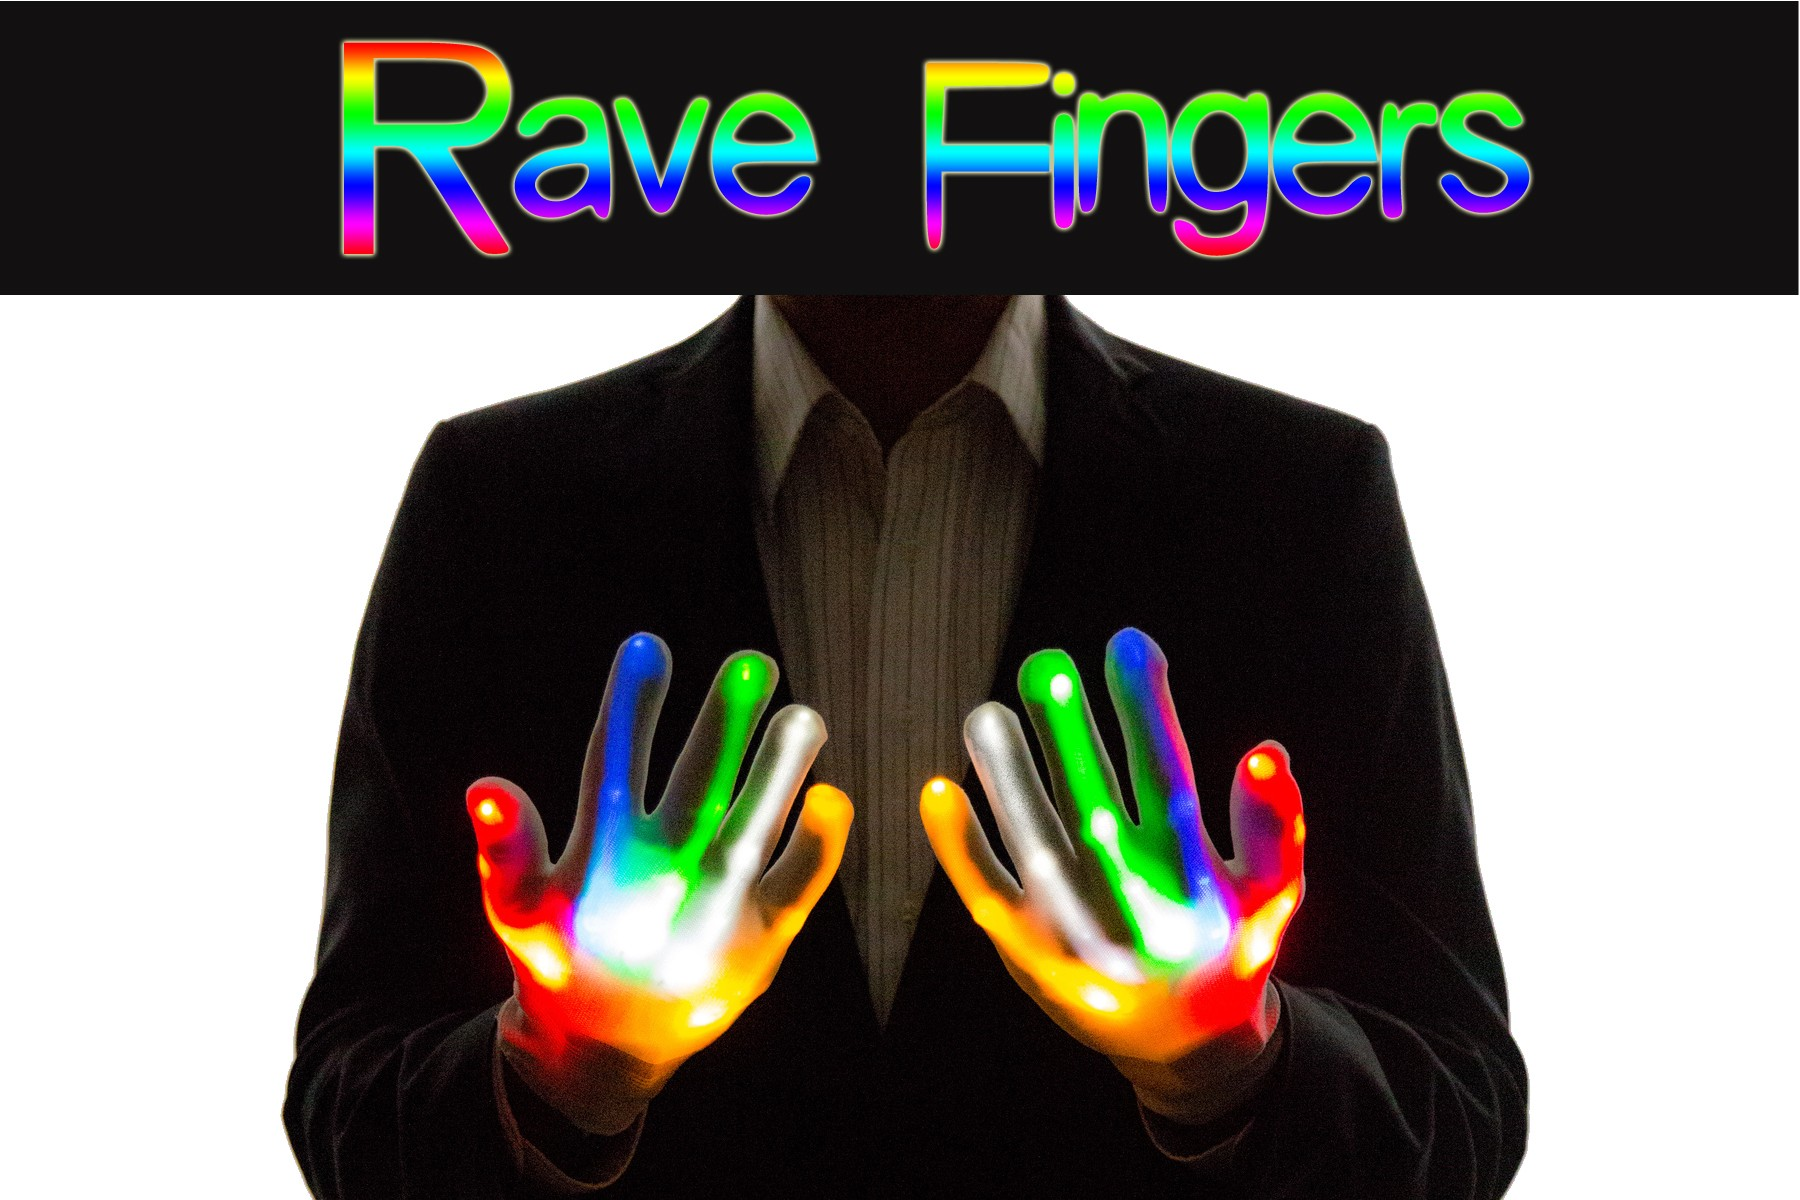 Light Up Gloves aka Rave Fingers